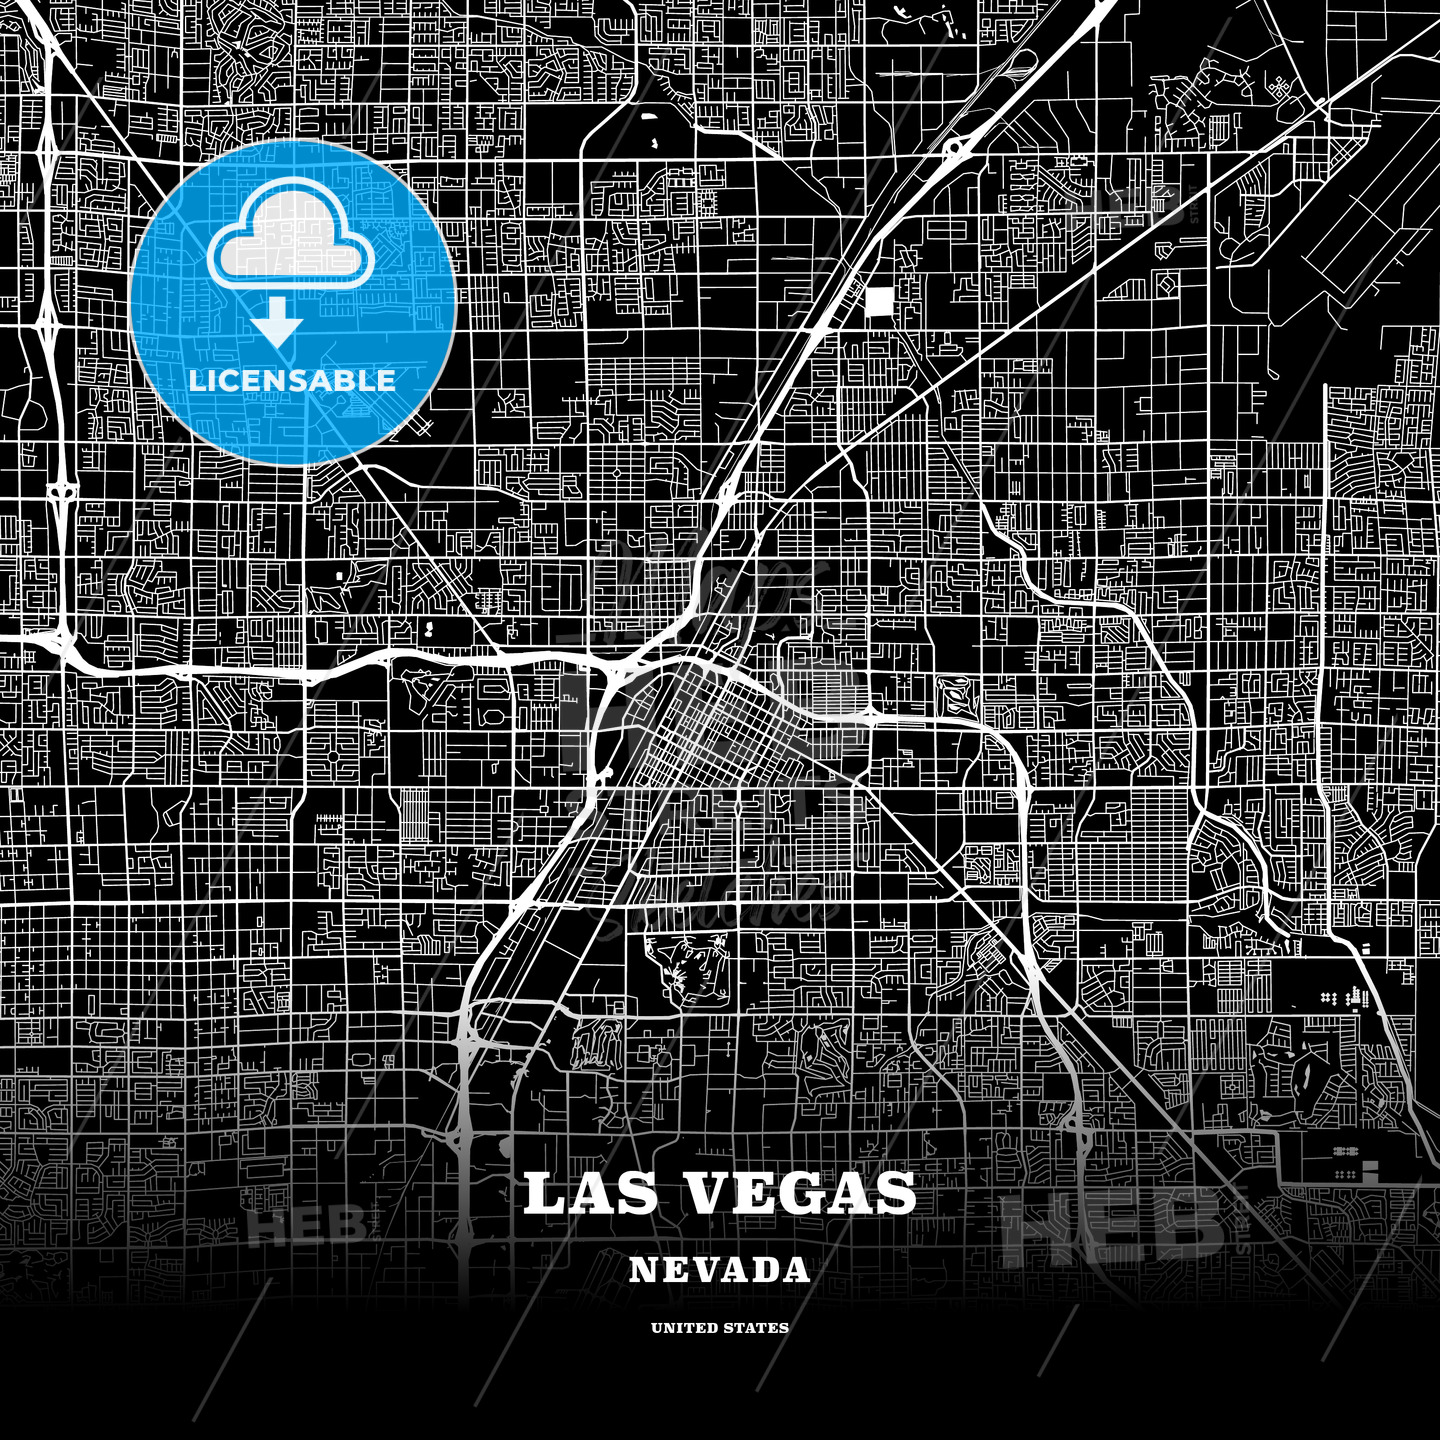 Black map poster template of Las Vegas, Nevada, USA | HEBSTREITS ...